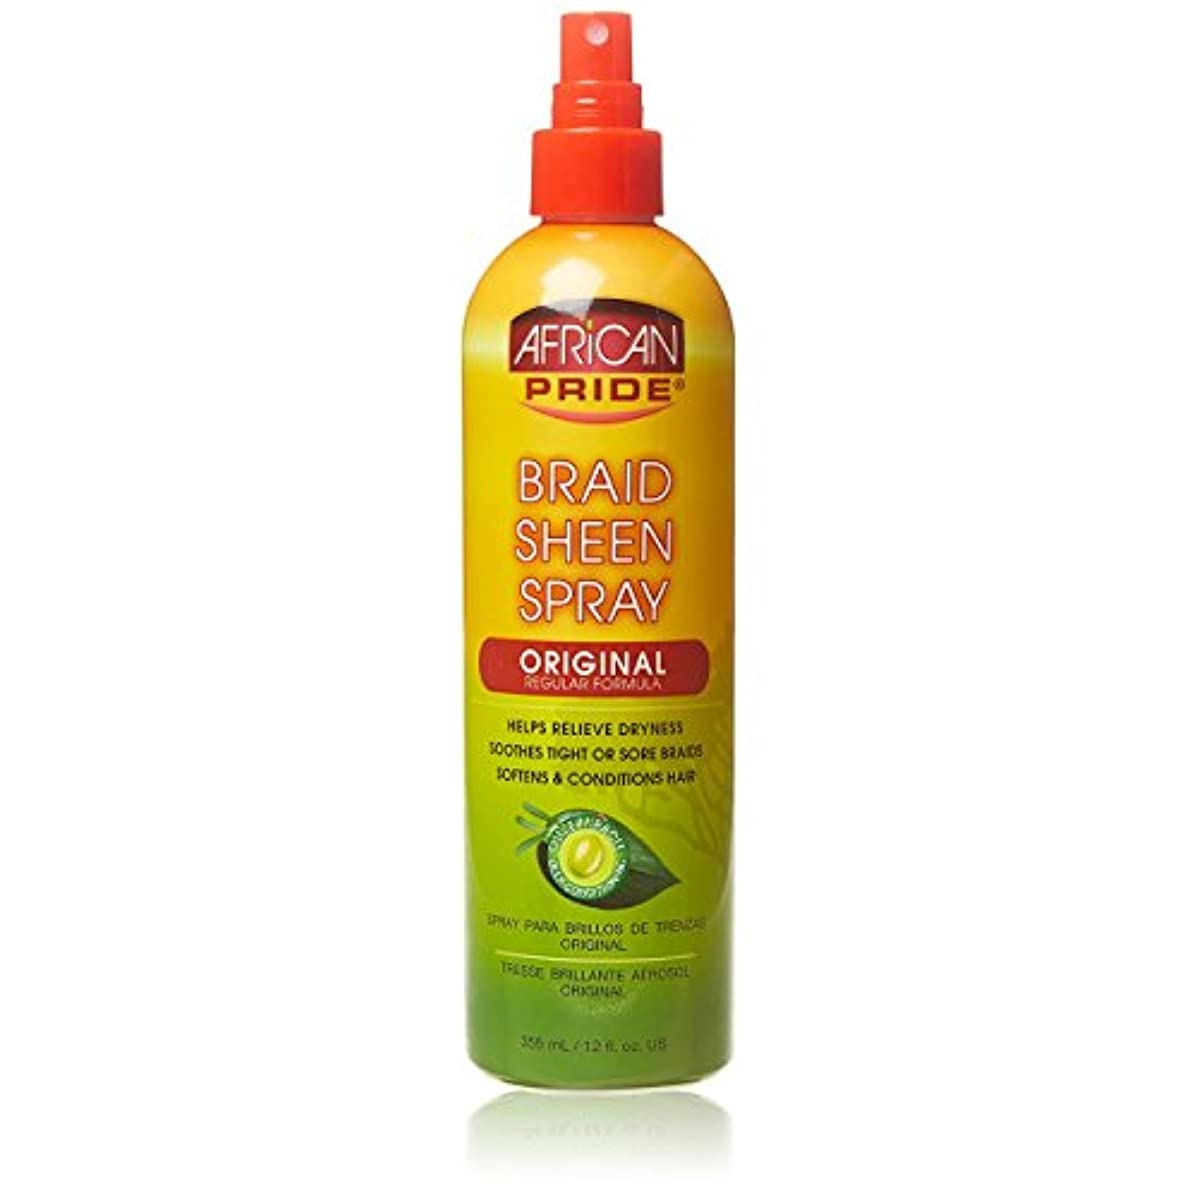 African Pride Original Braid Sheen Spray, 12 Ounce